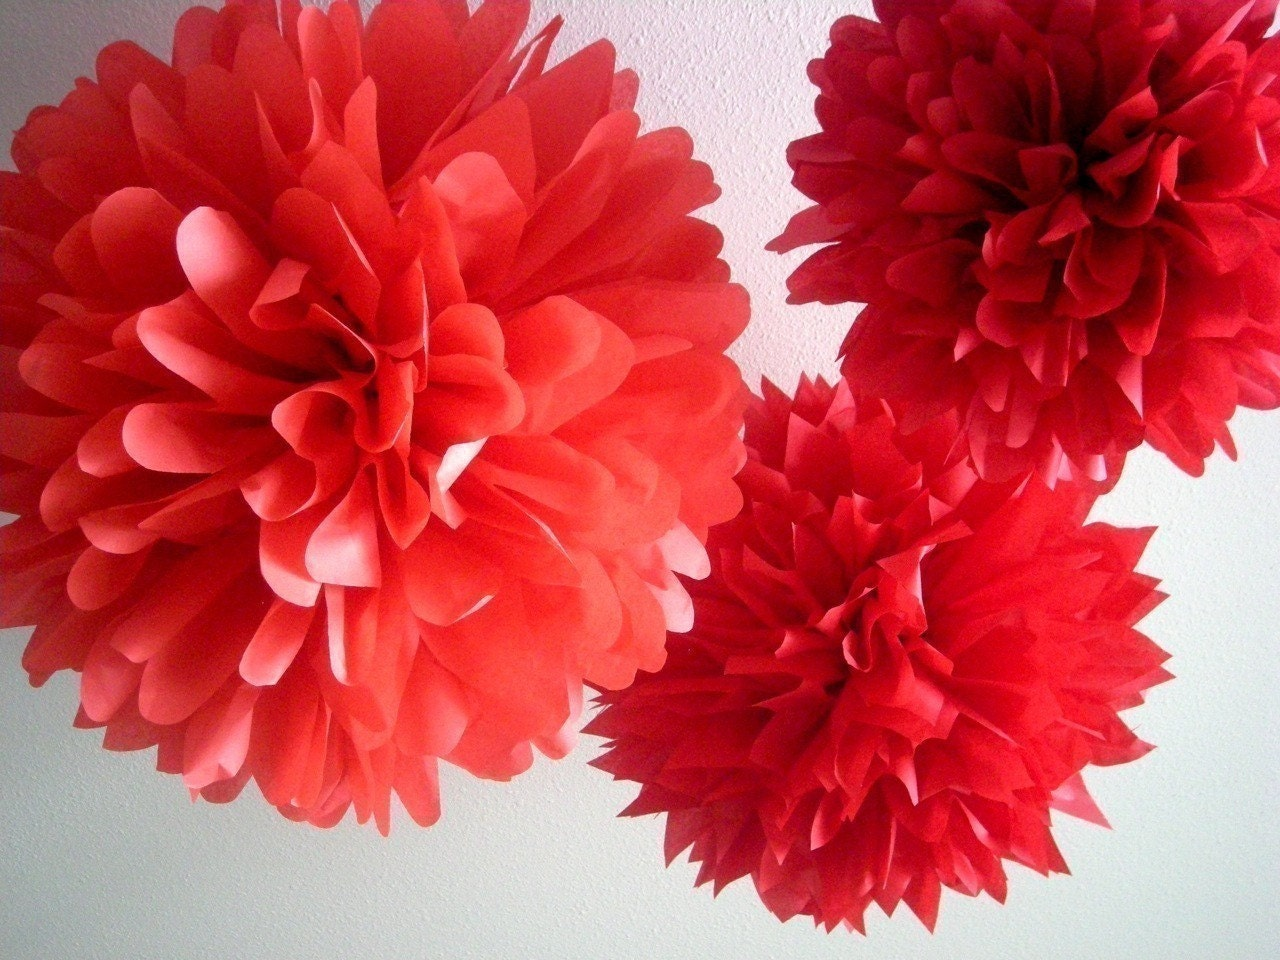 reds 3 tissue paper poms wedding decorations. Black Bedroom Furniture Sets. Home Design Ideas